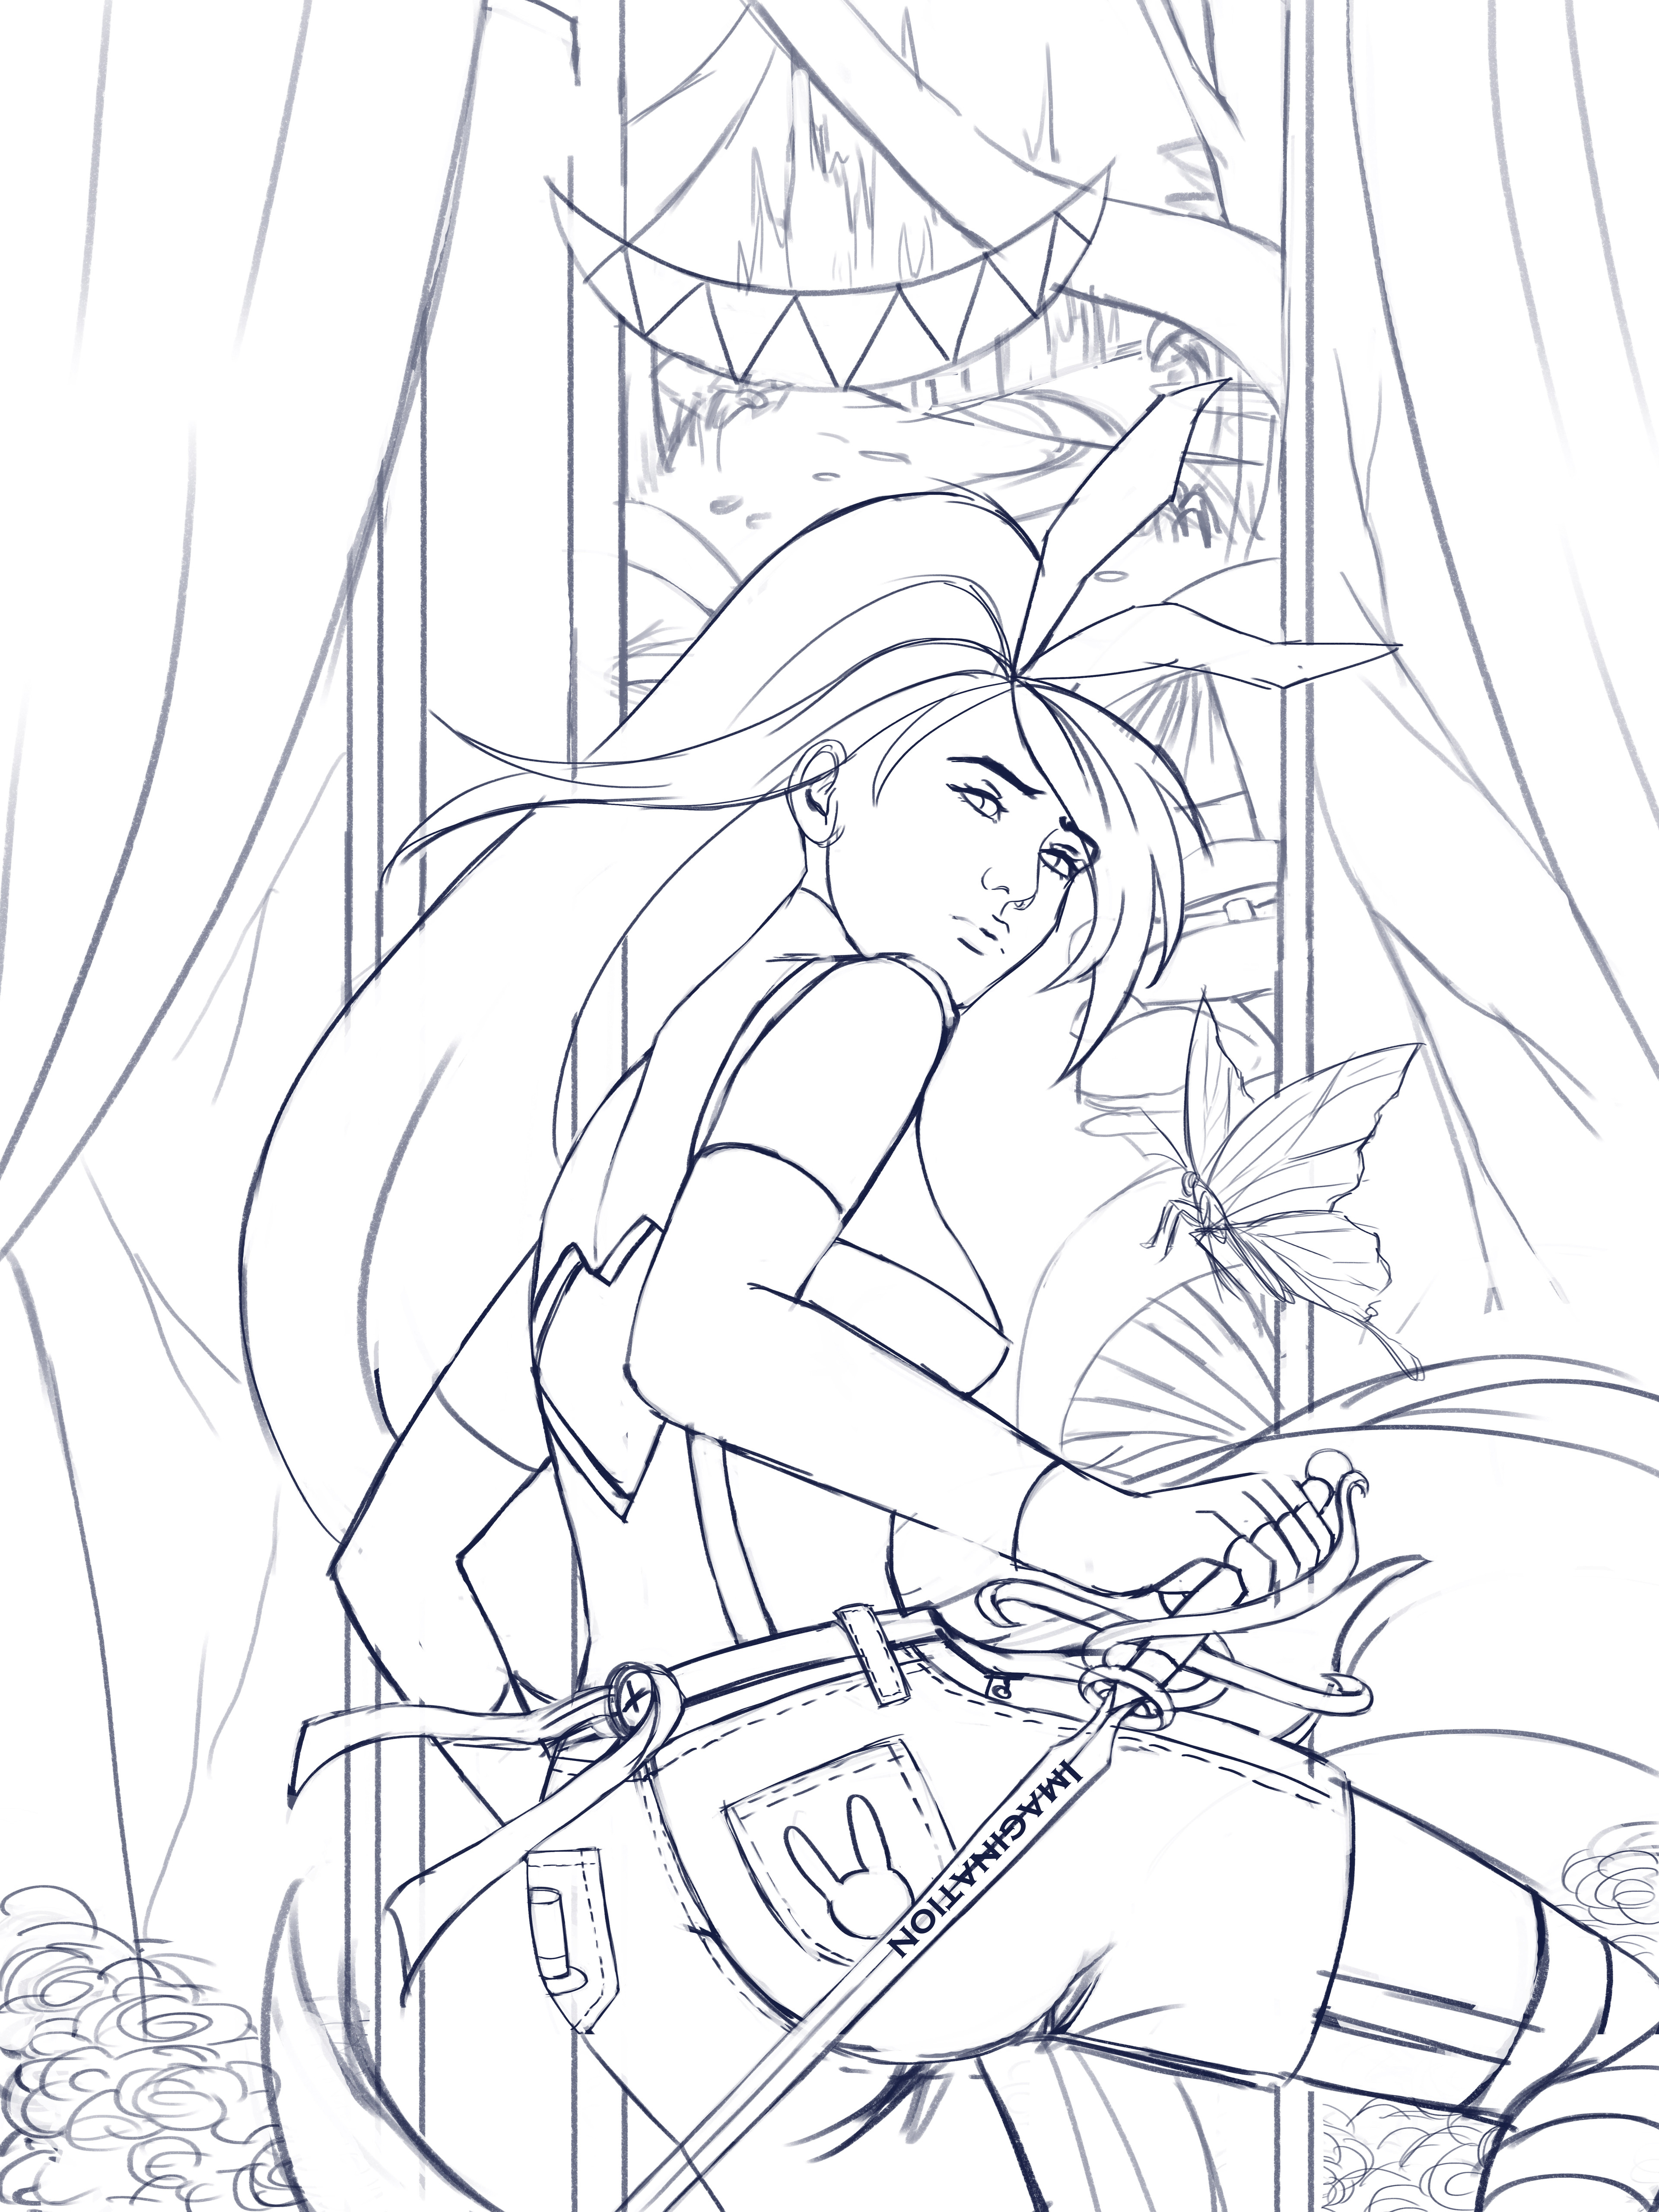 Step 1 - Lineart